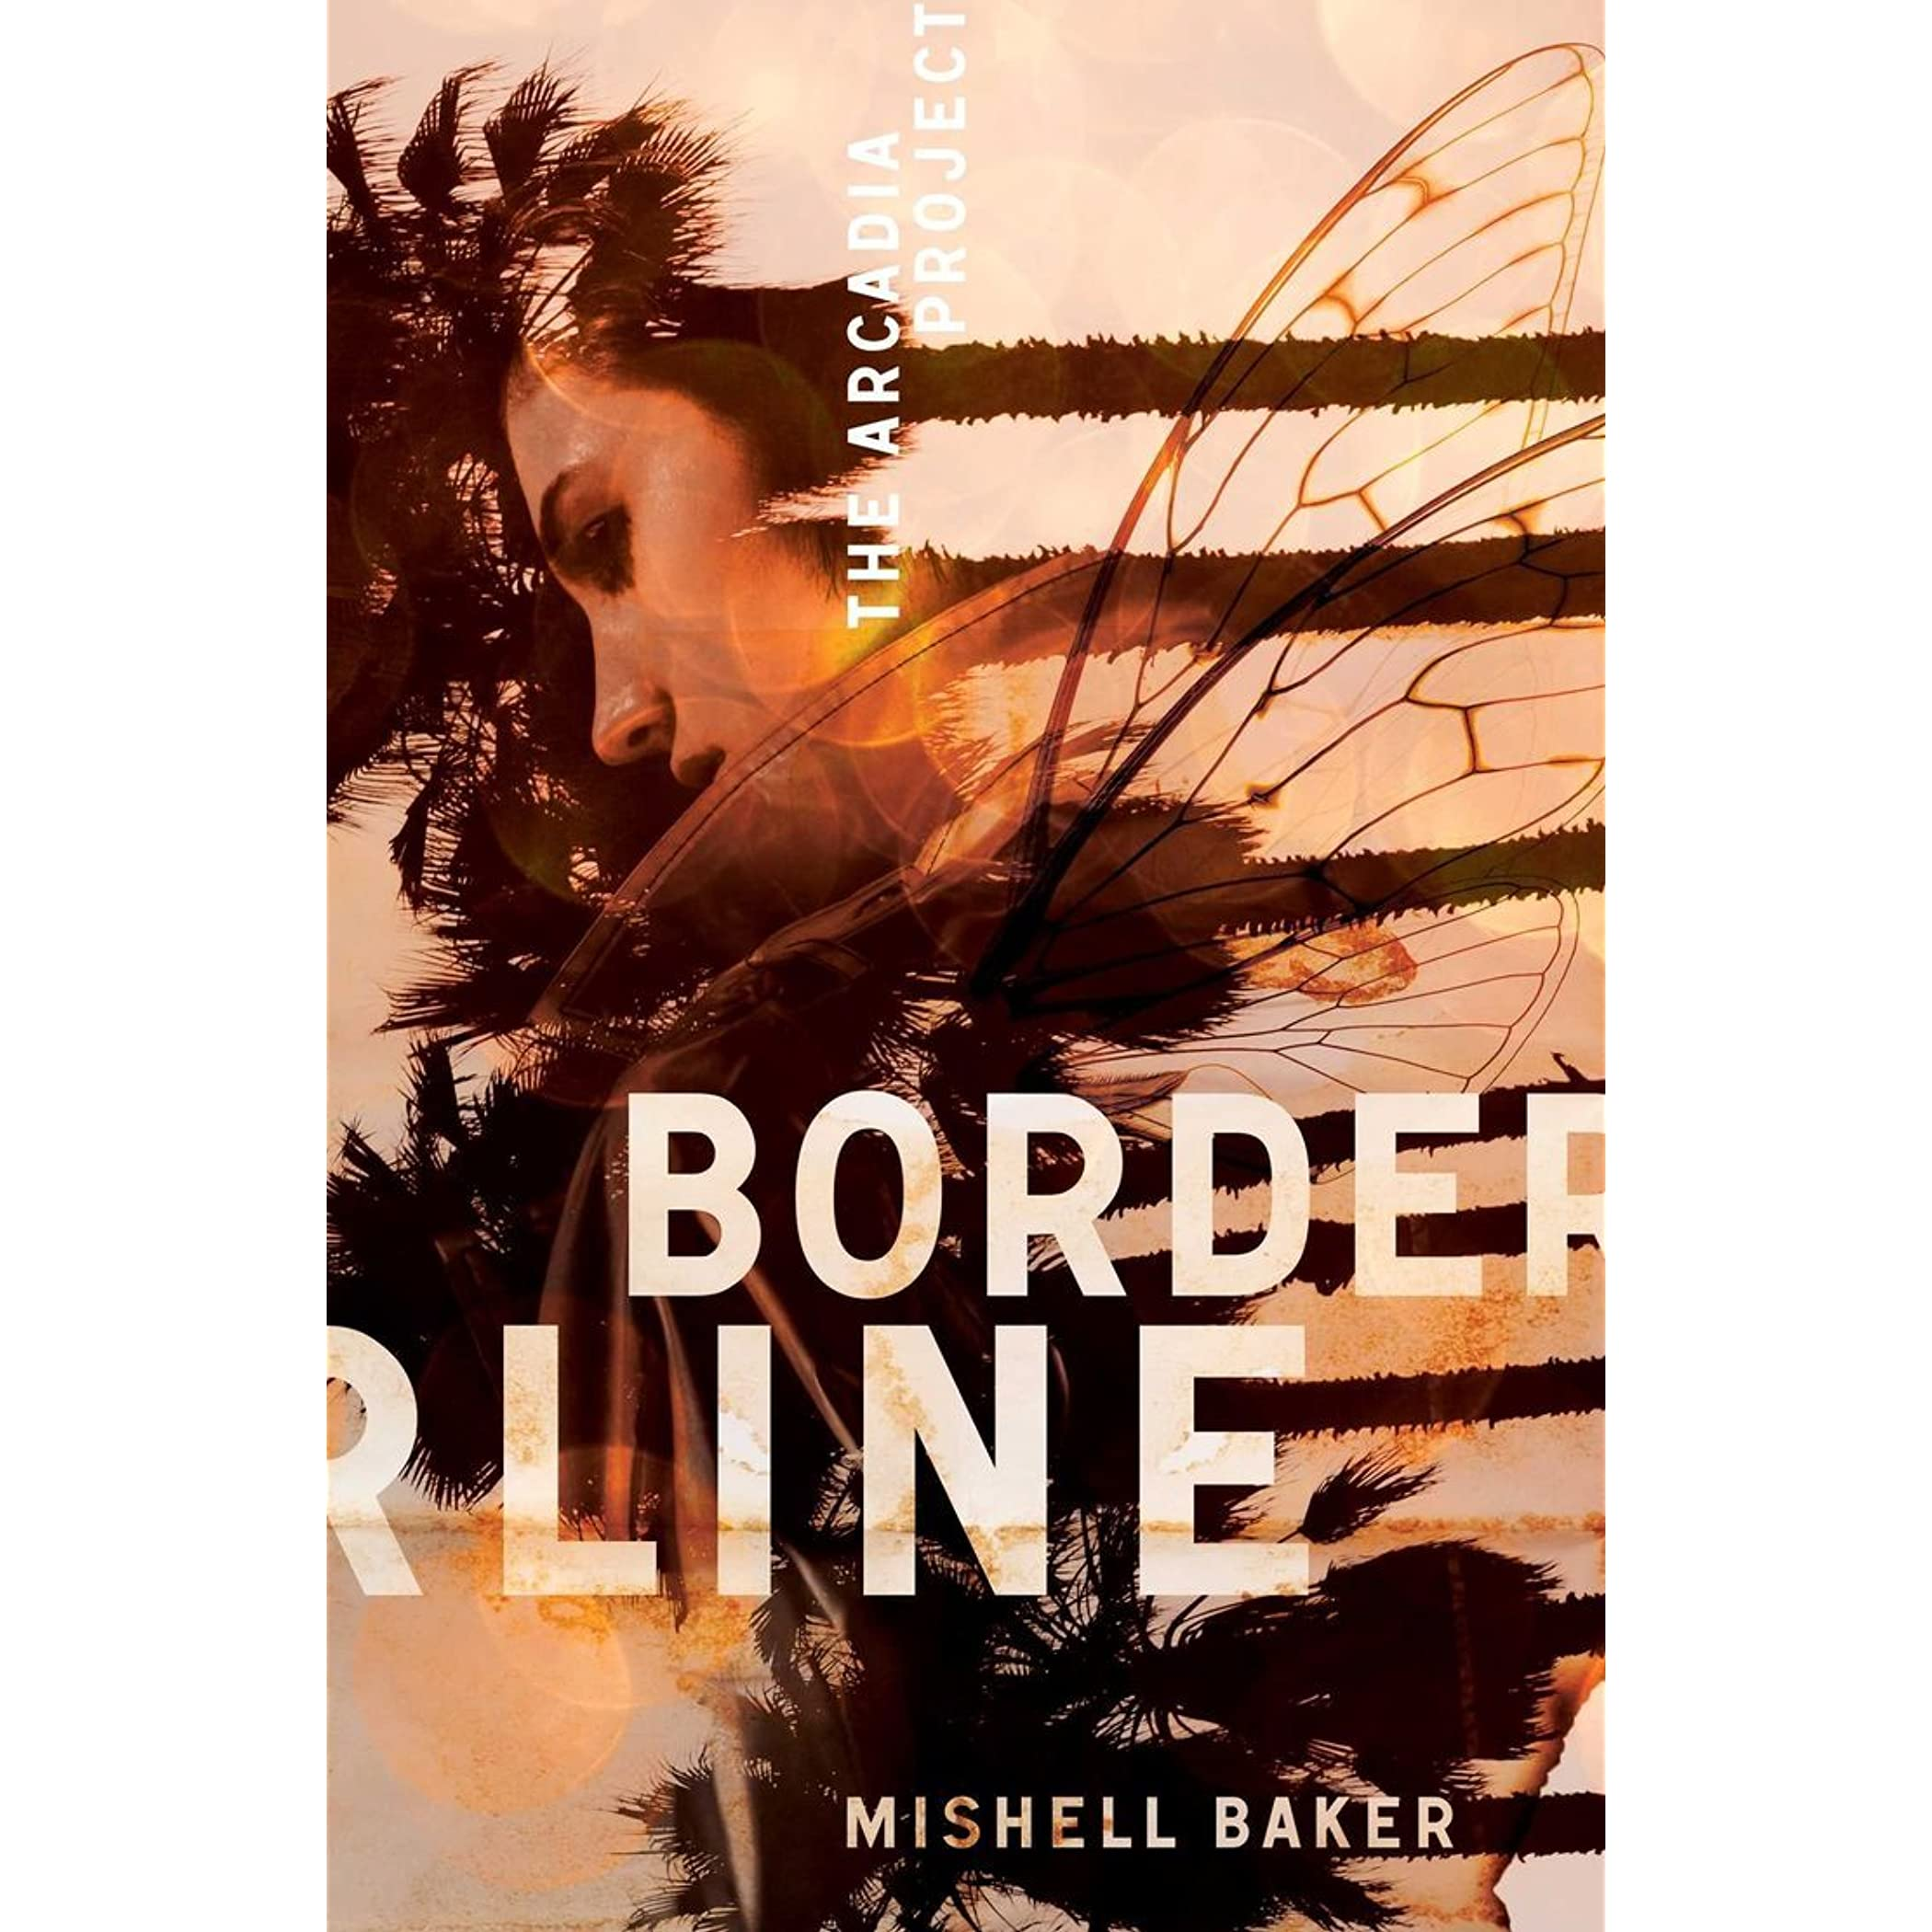 Borderline (The Arcadia Project, #1) by Mishell Baker